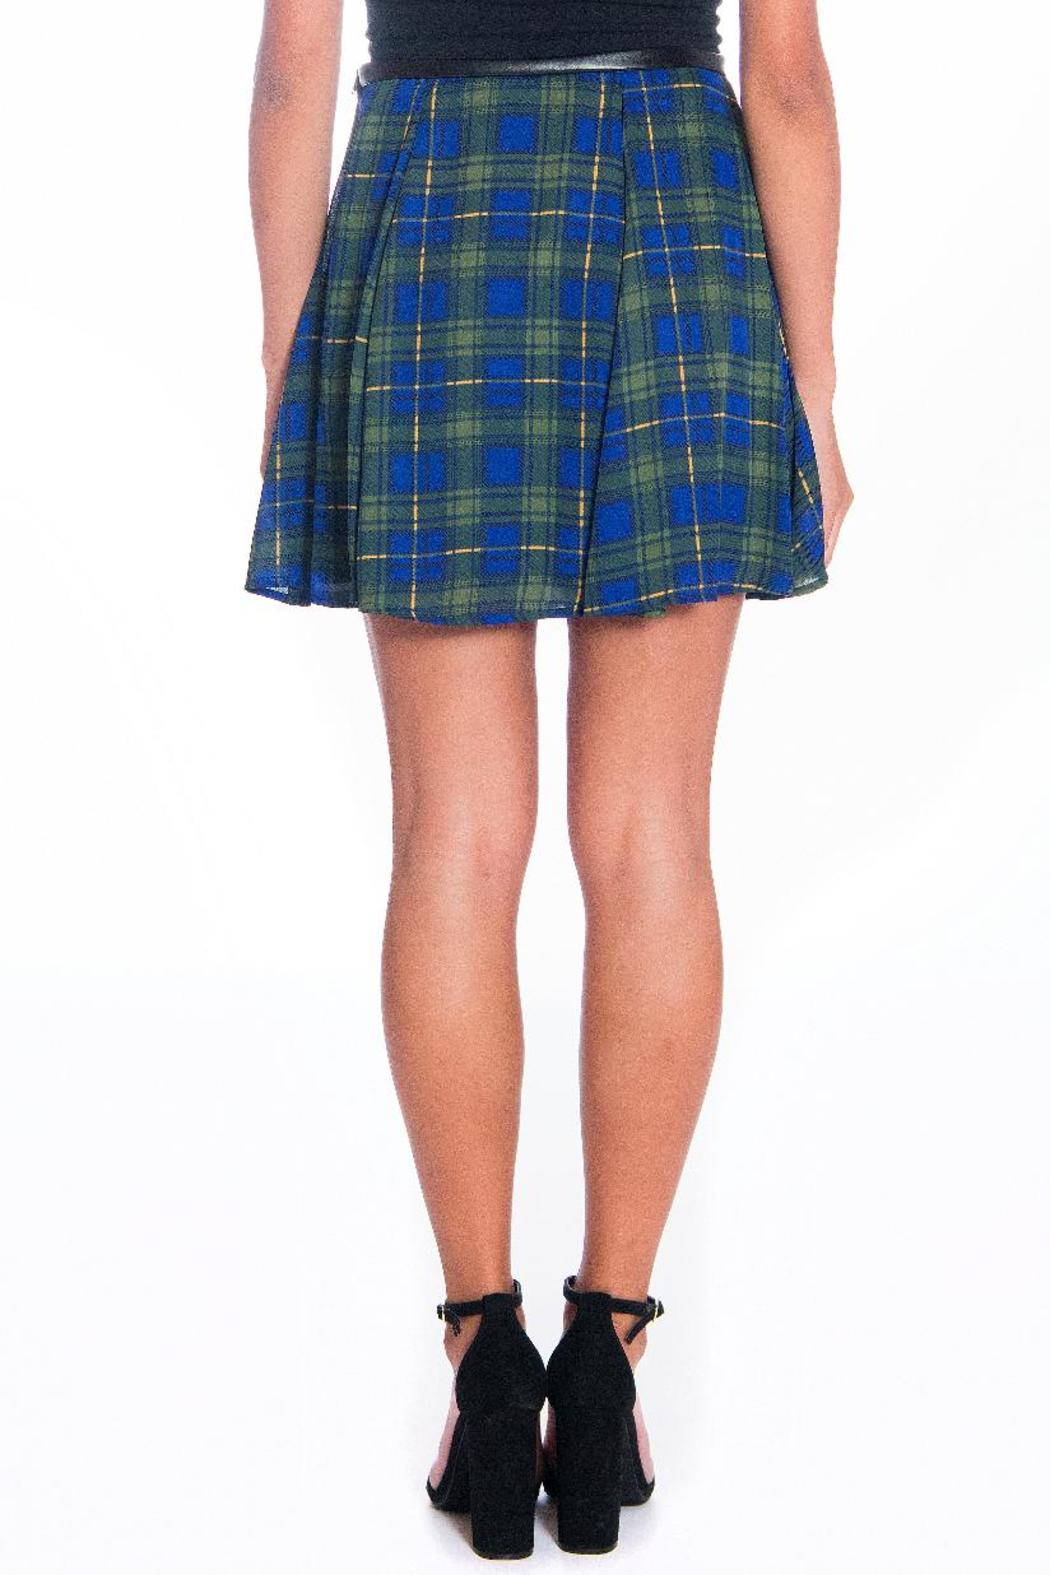 Must Have Blue-Green Plaid Skirt - Side Cropped Image